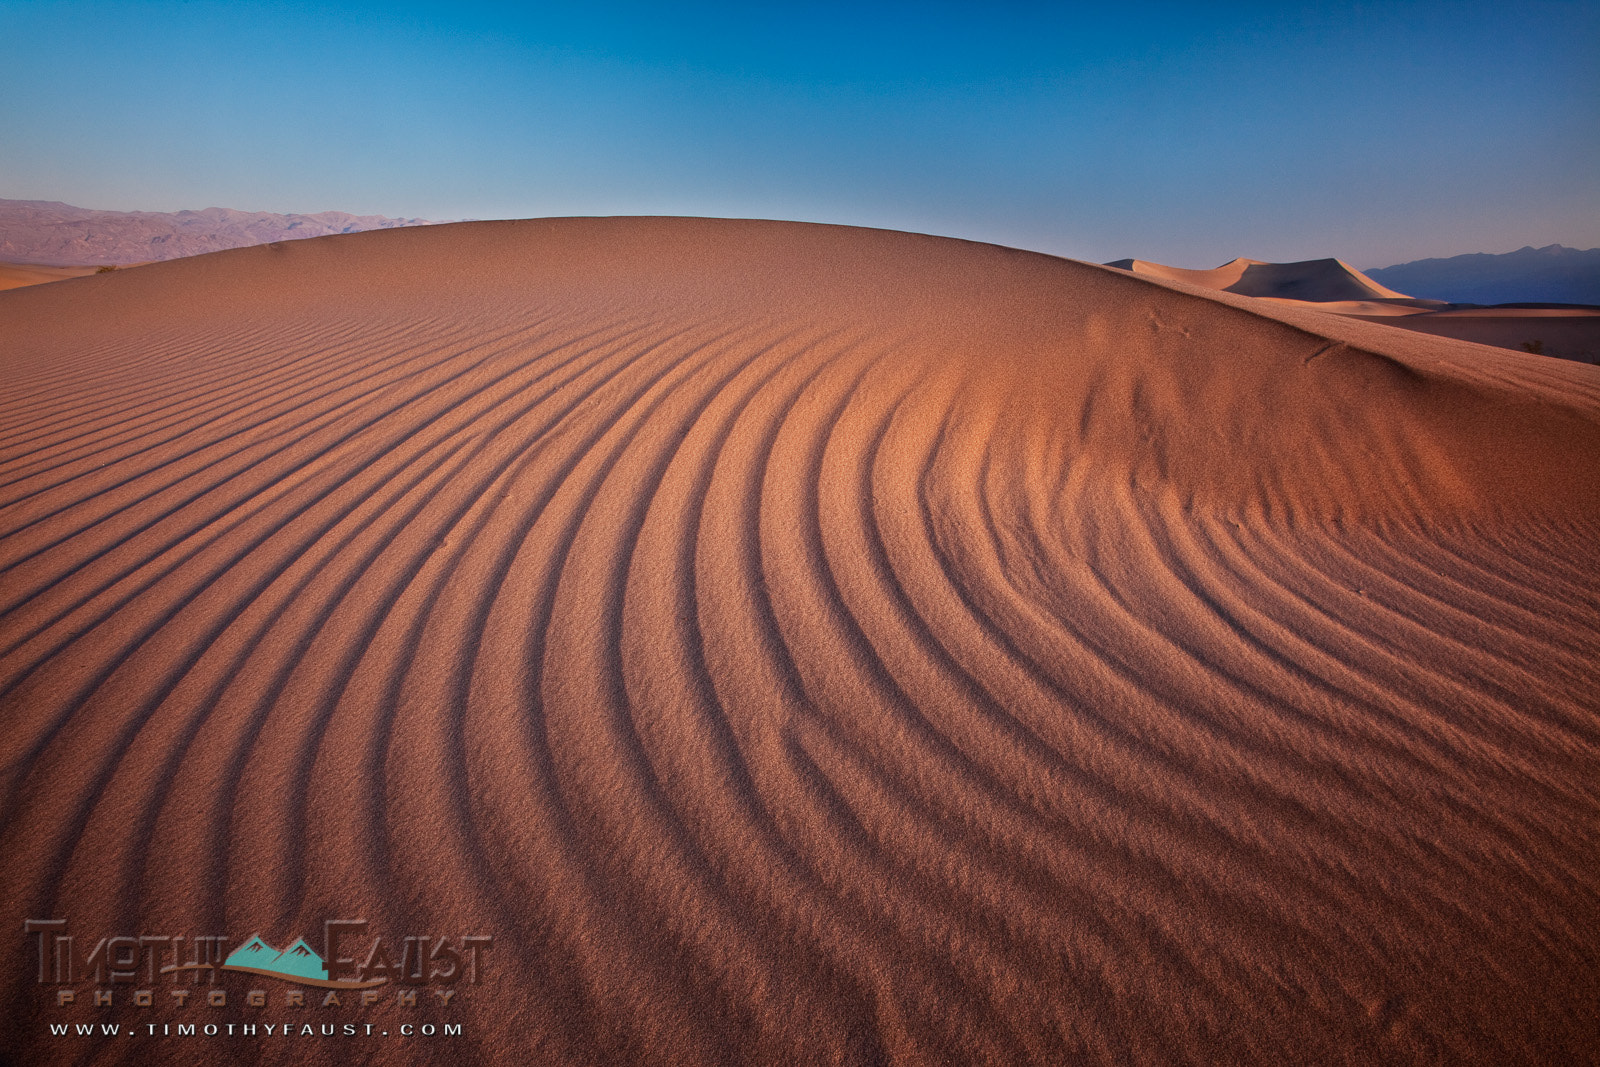 Photograph Sand Wave by Timothy Faust on 500px